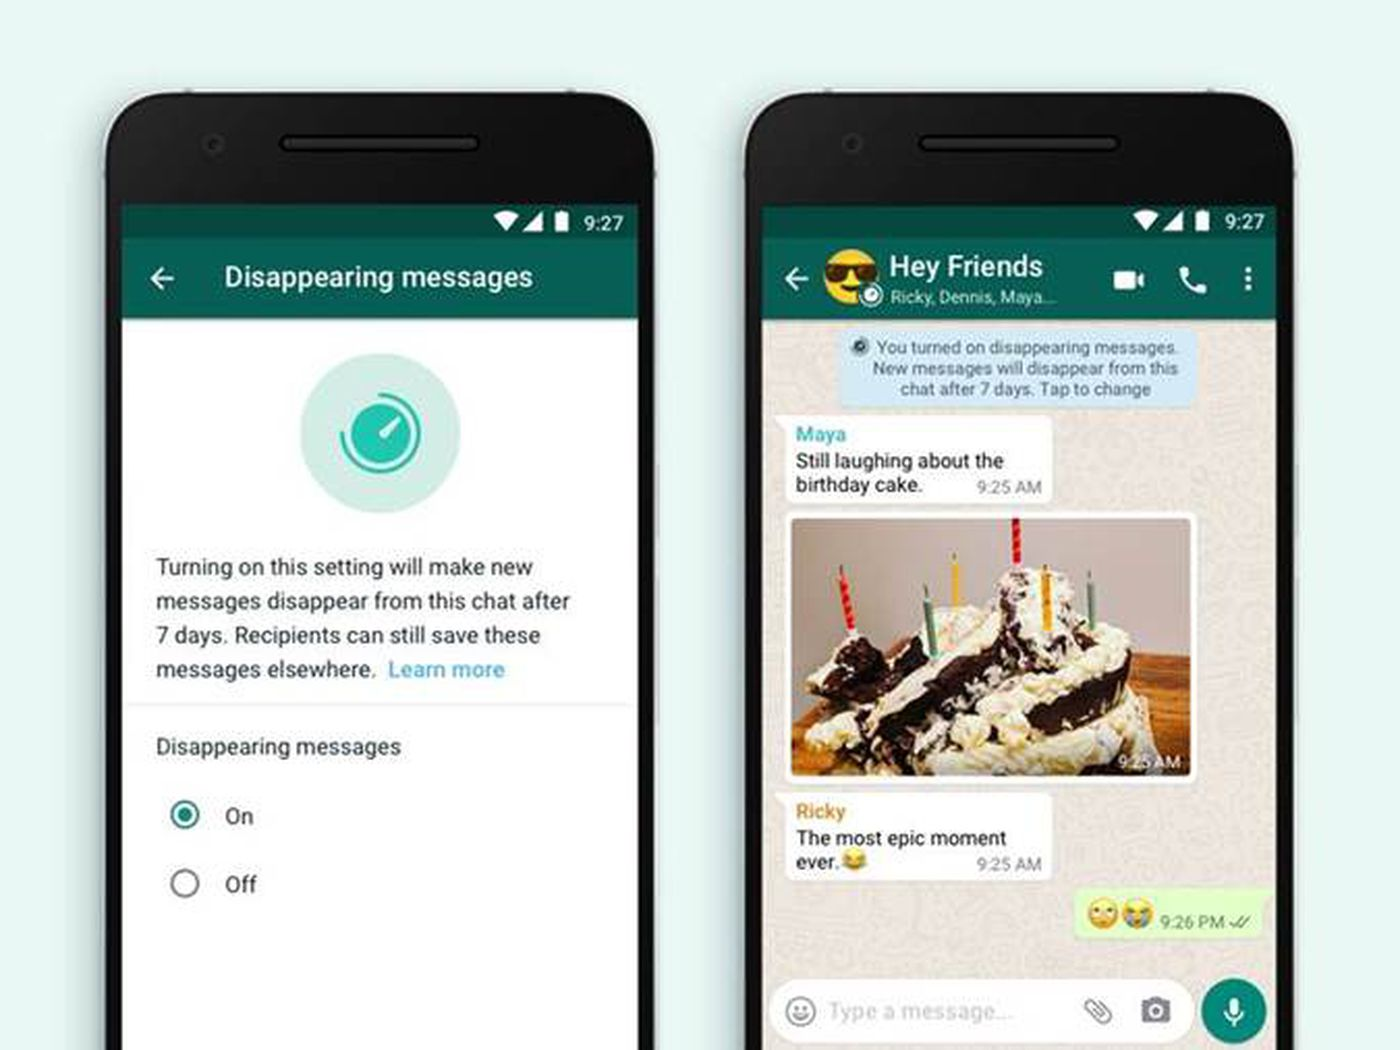 WhatsApp launches new disappearing messages option - The Verge